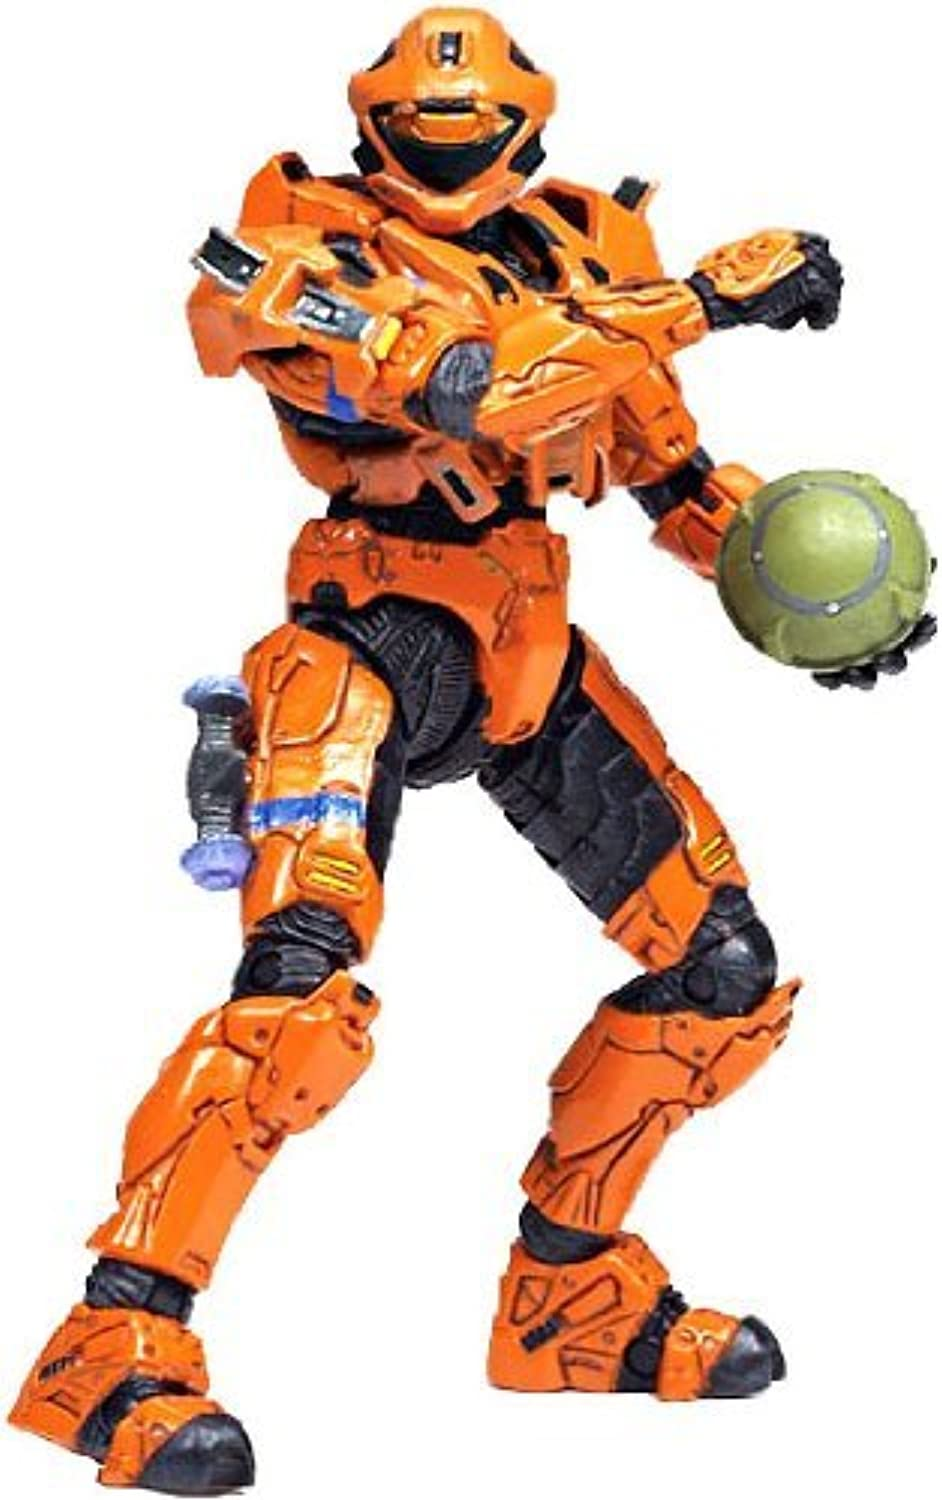 McFarlane Toys Halo 3 Series 5 (2009 Wave 2) SDCC San Diego Comic-Con Exclusive Action Figure Grifball Spartan by McFarlane